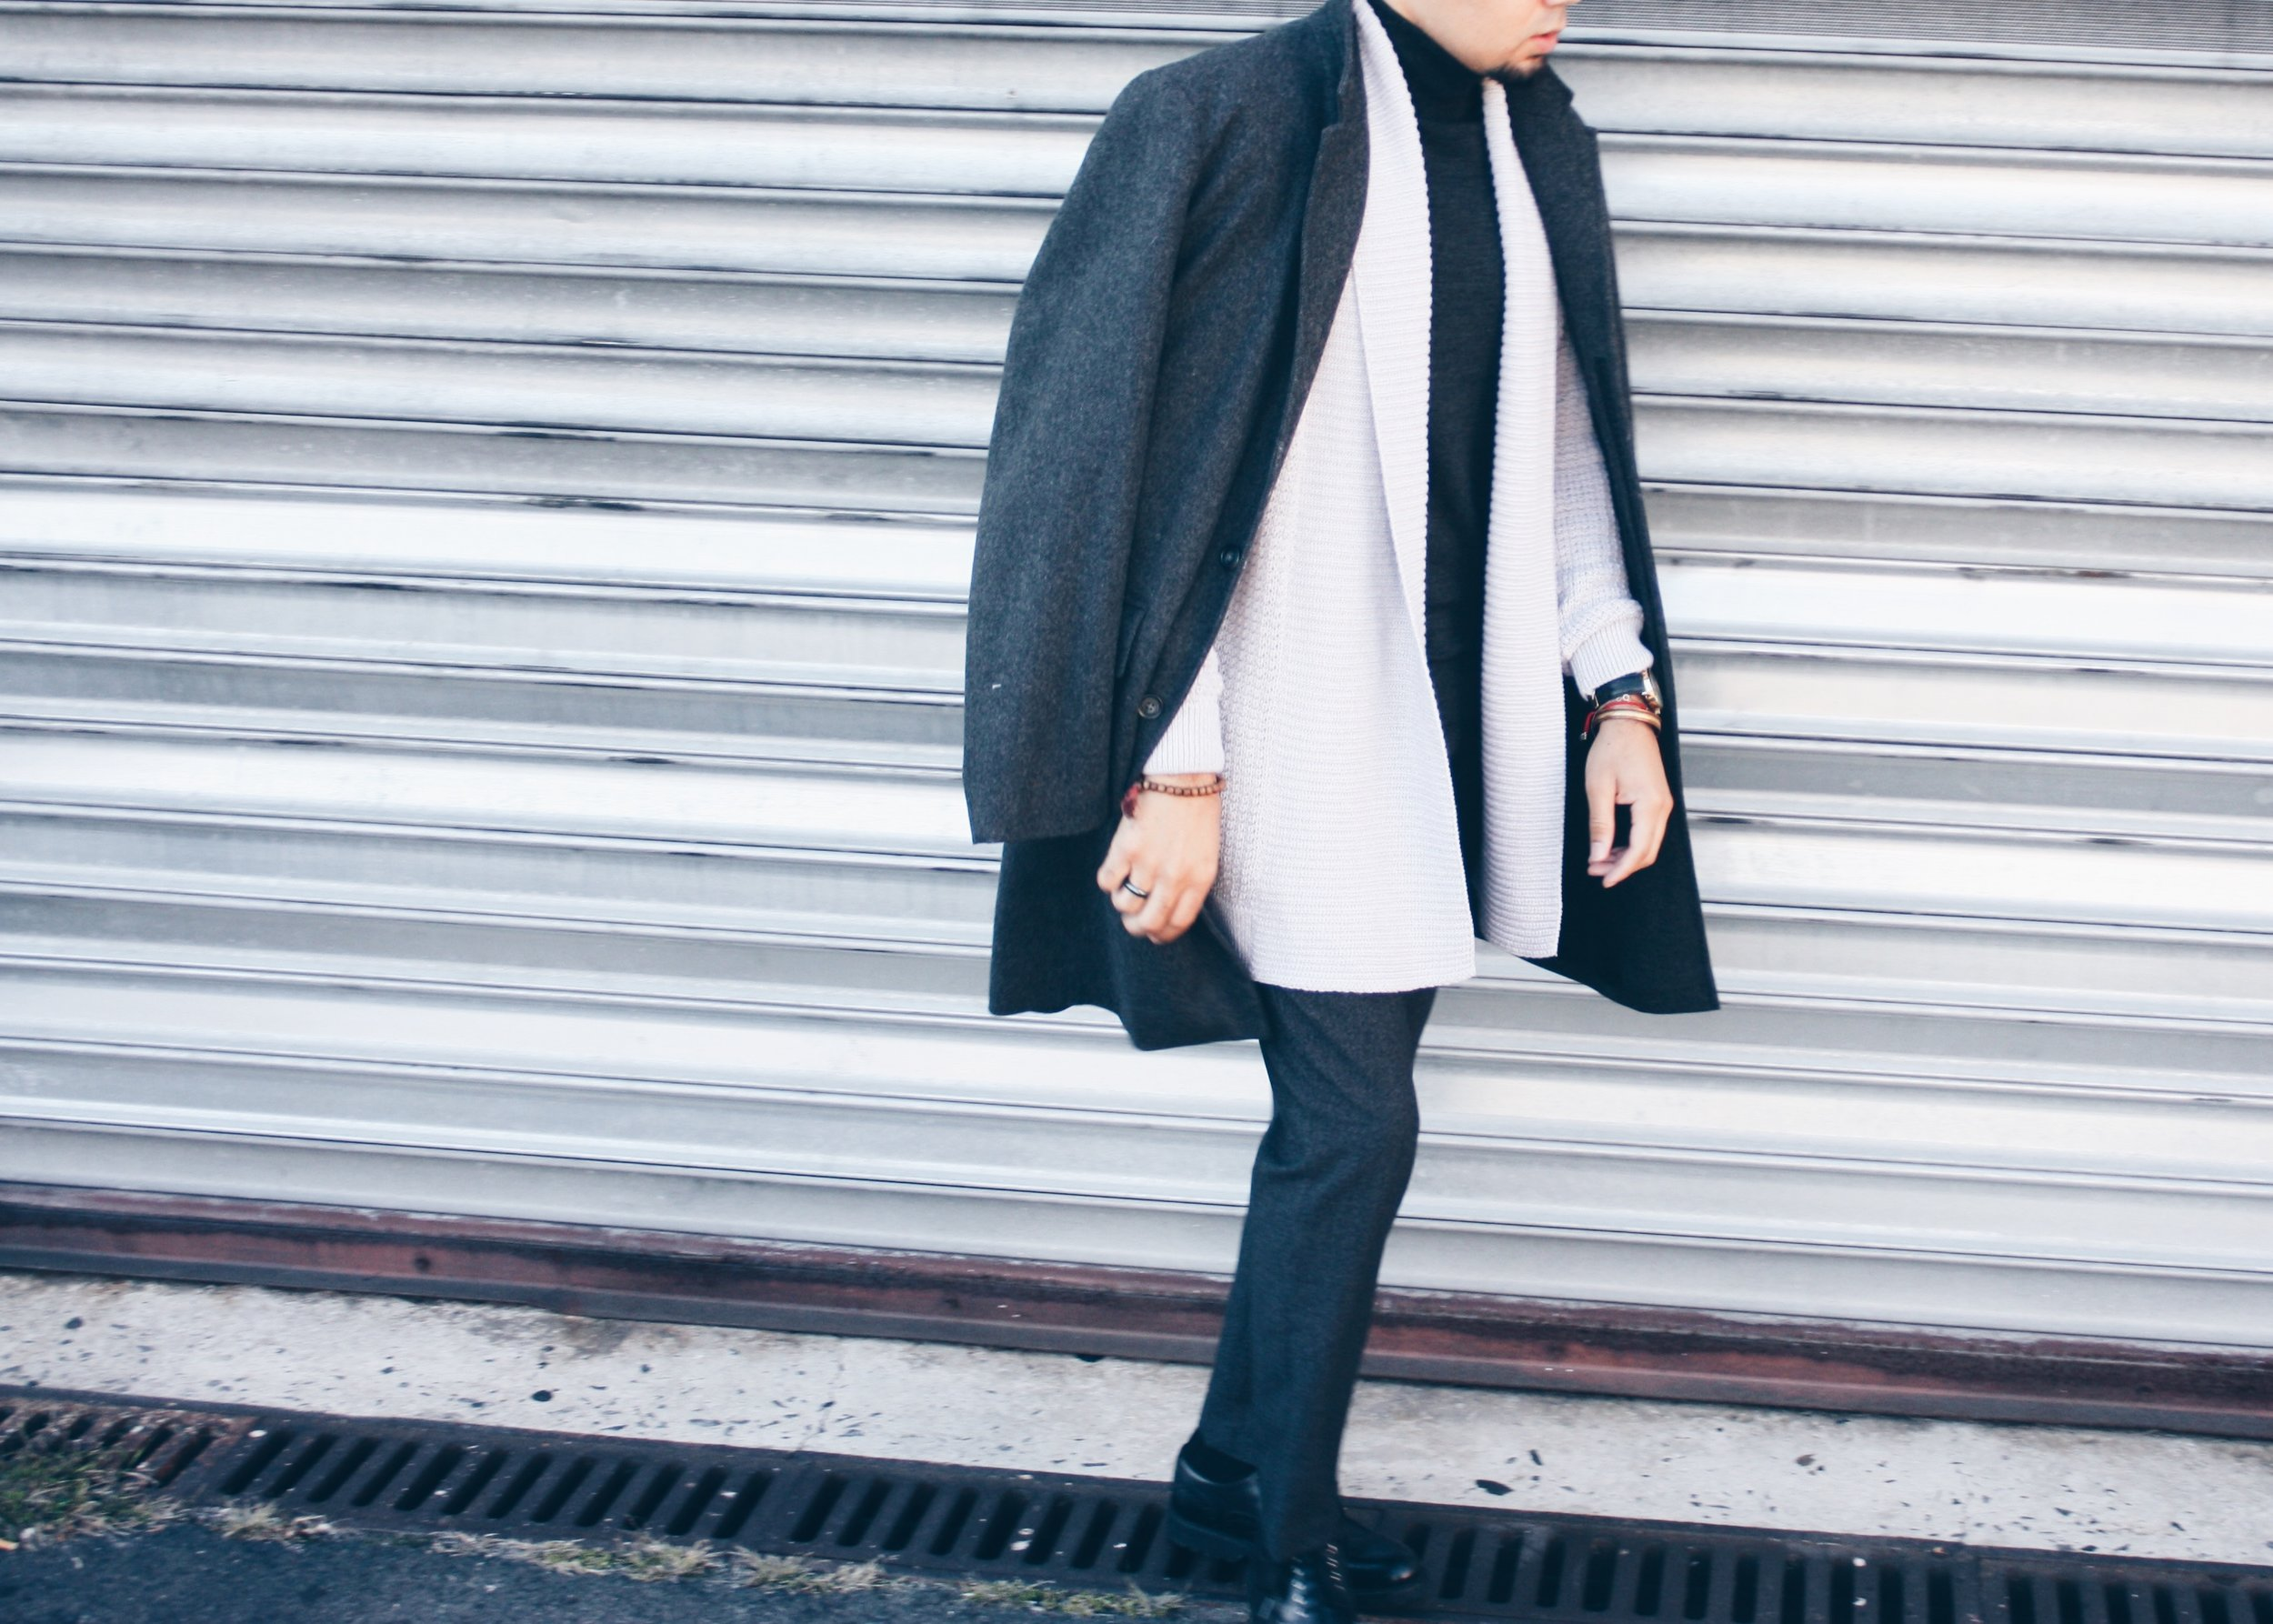 sam-c-perry-monochromatic-grey-oversized-overcoat-cropped-details.jpg